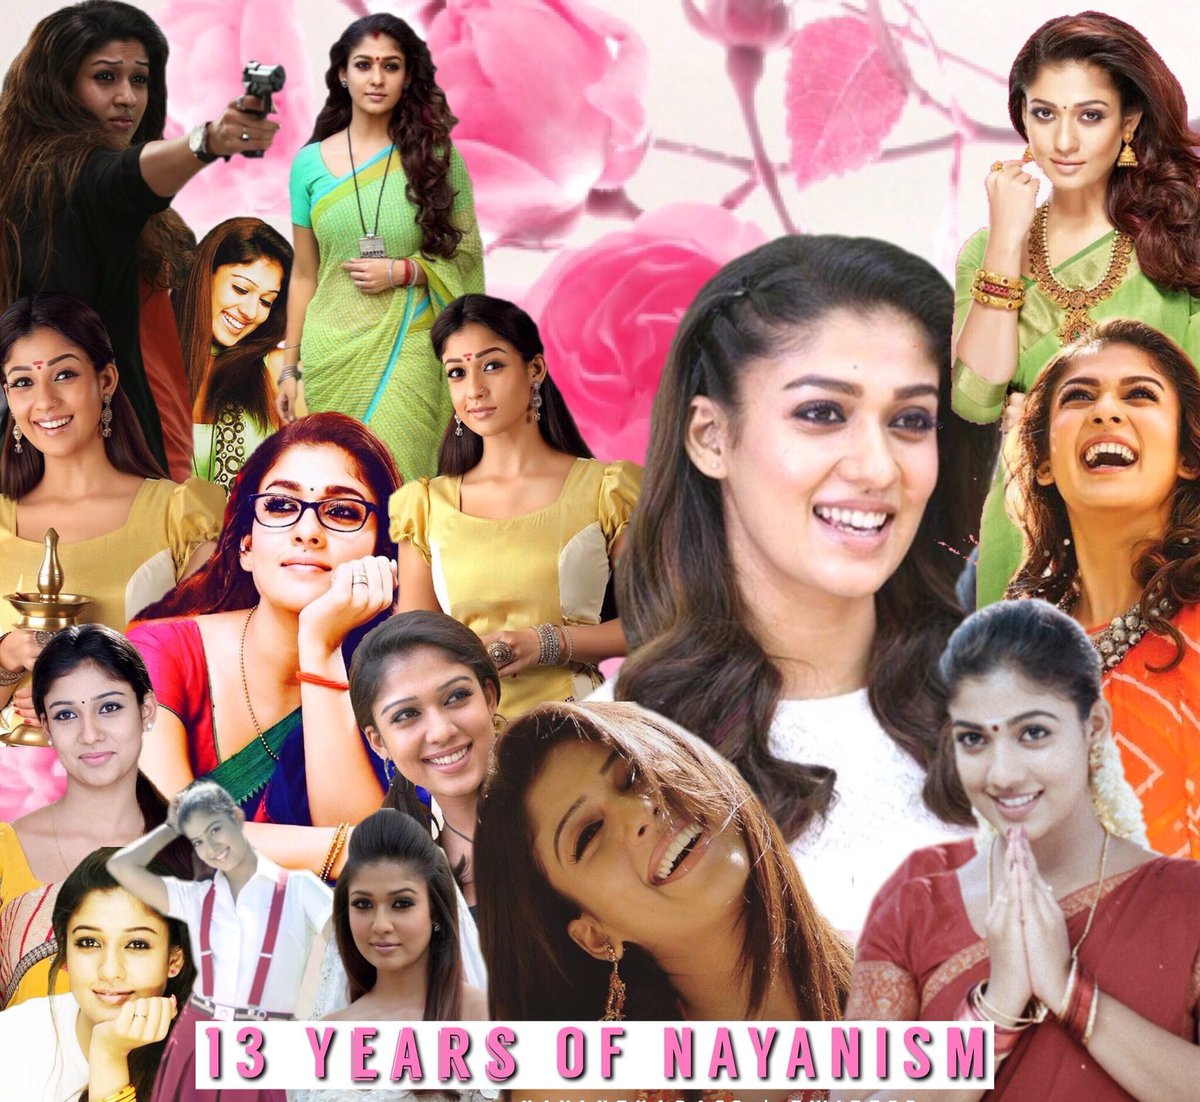 It's my sweet...my best actor nayan mam... https://t.co/V6saHZfBuh